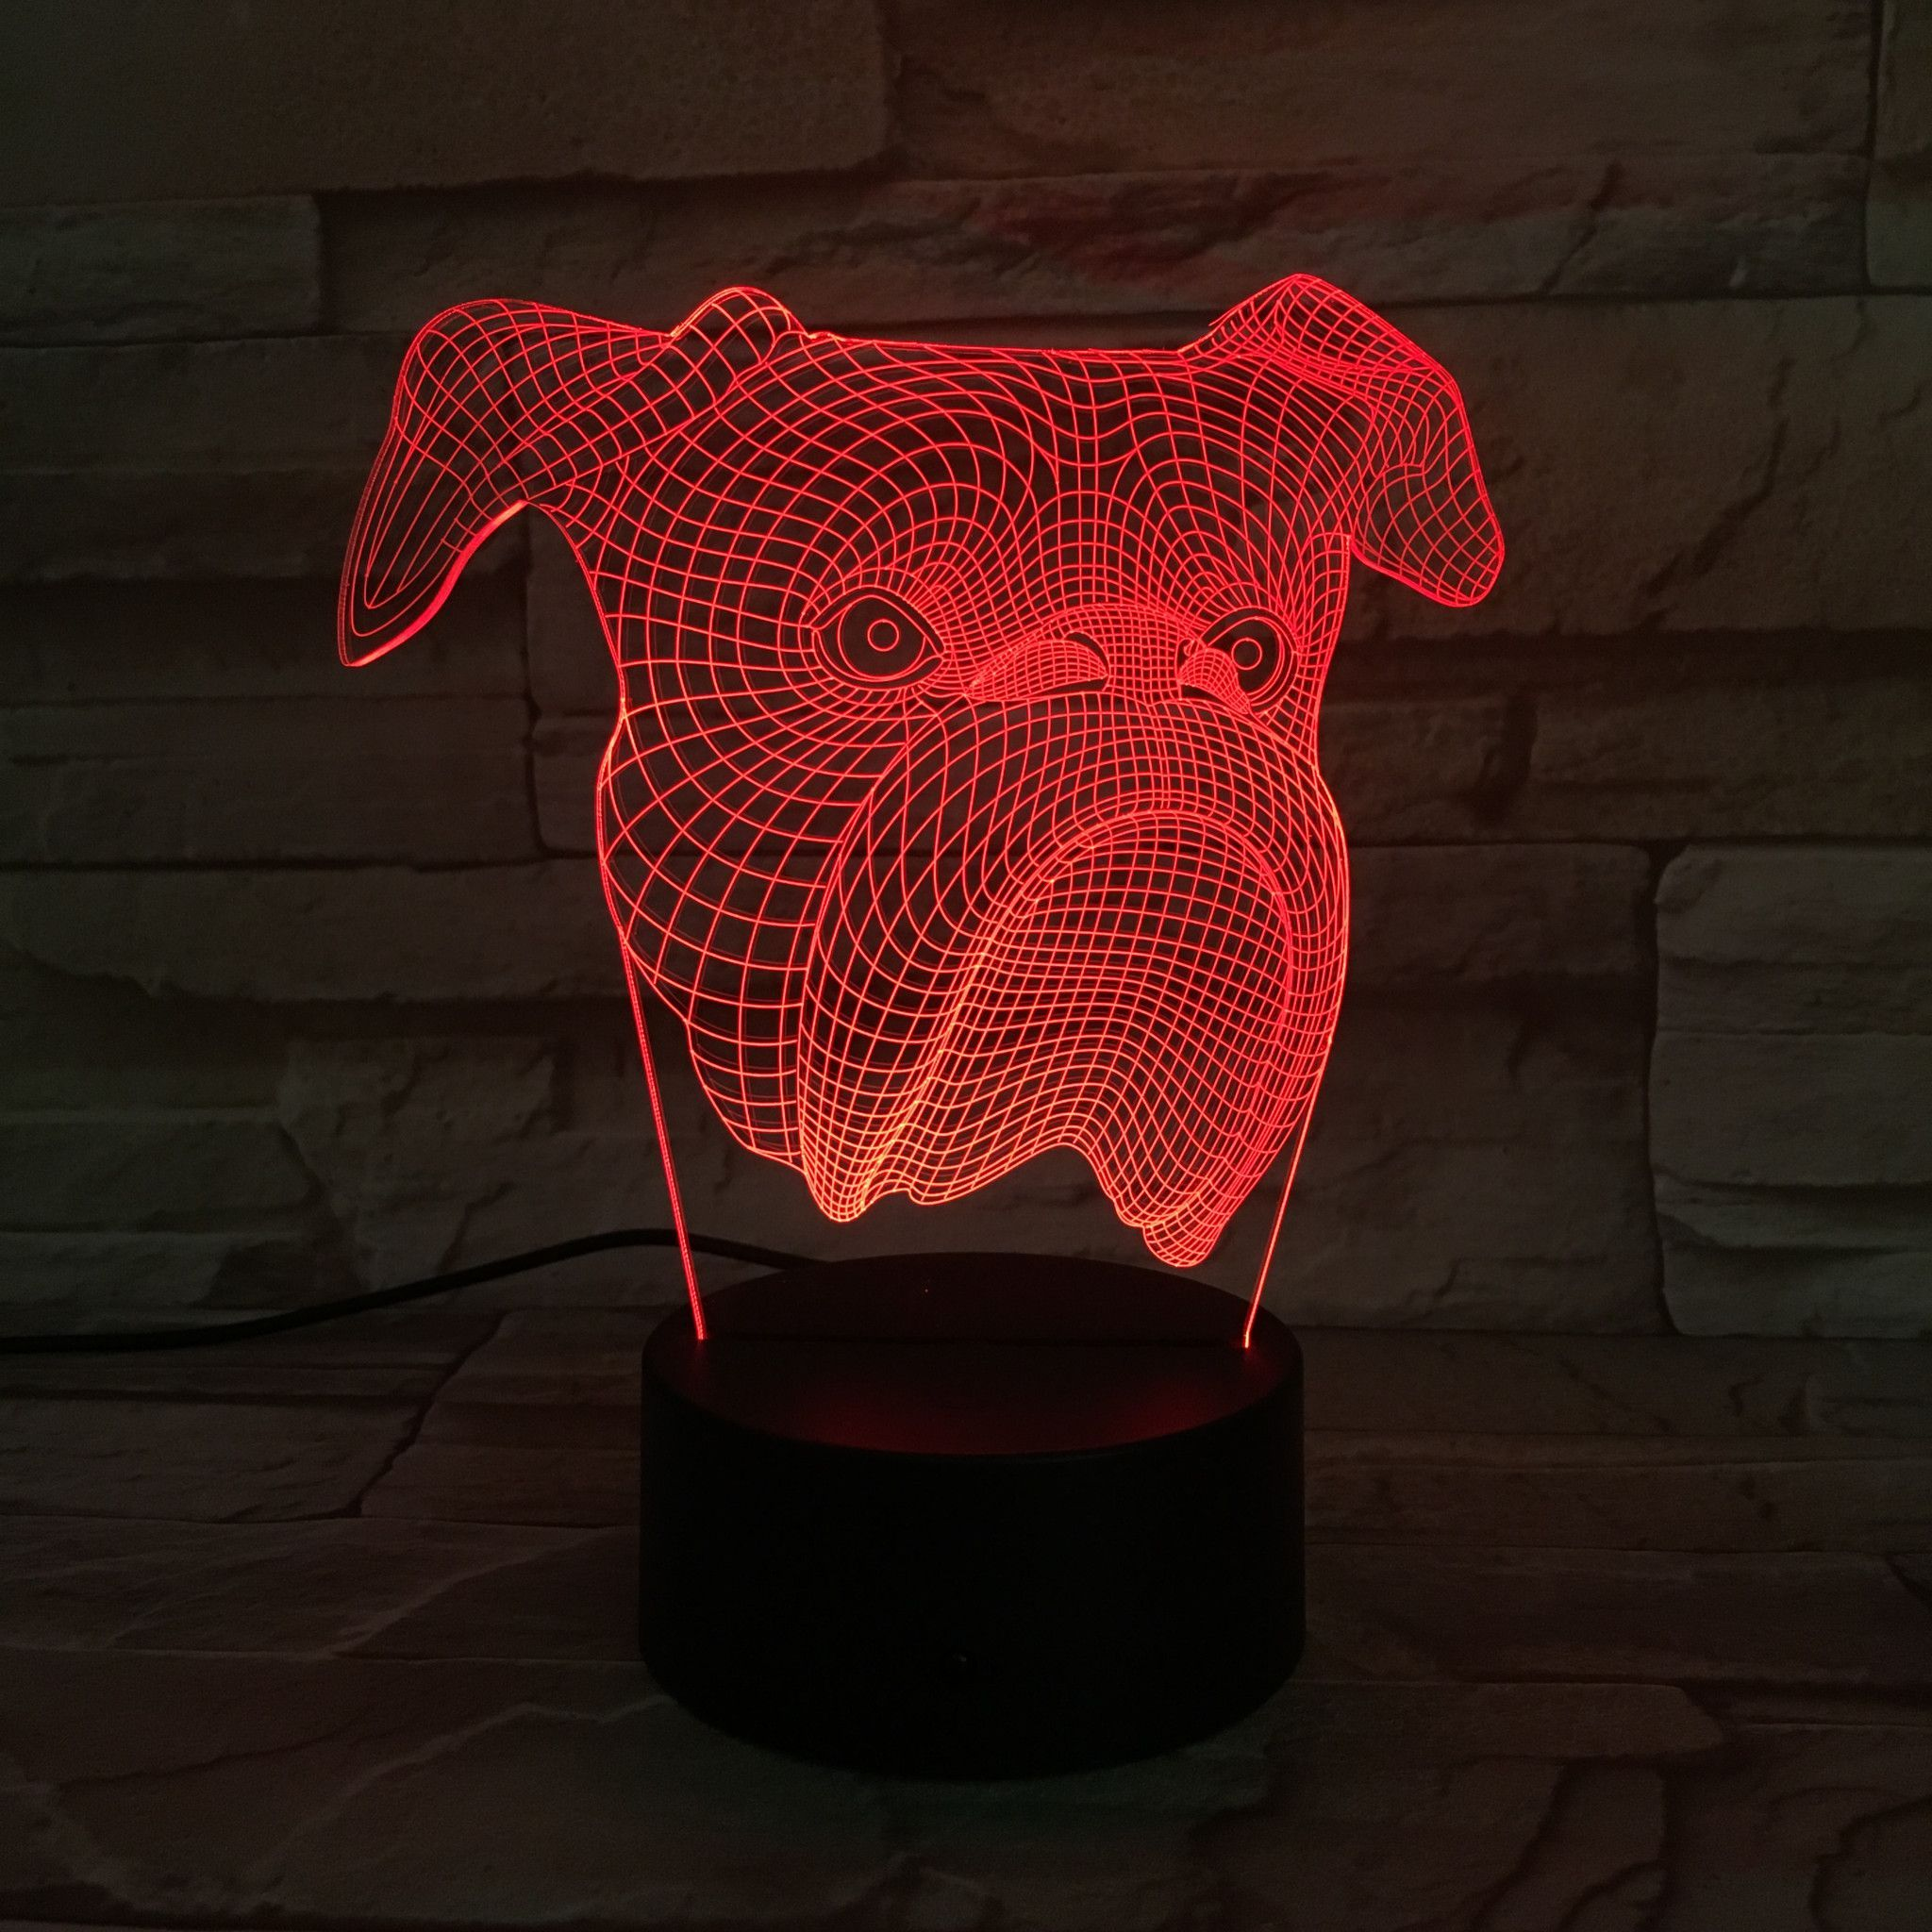 Bulldog 3d Illusion Lamp 3d Illusion Lamp 3d Illusions 3d Led Lamp